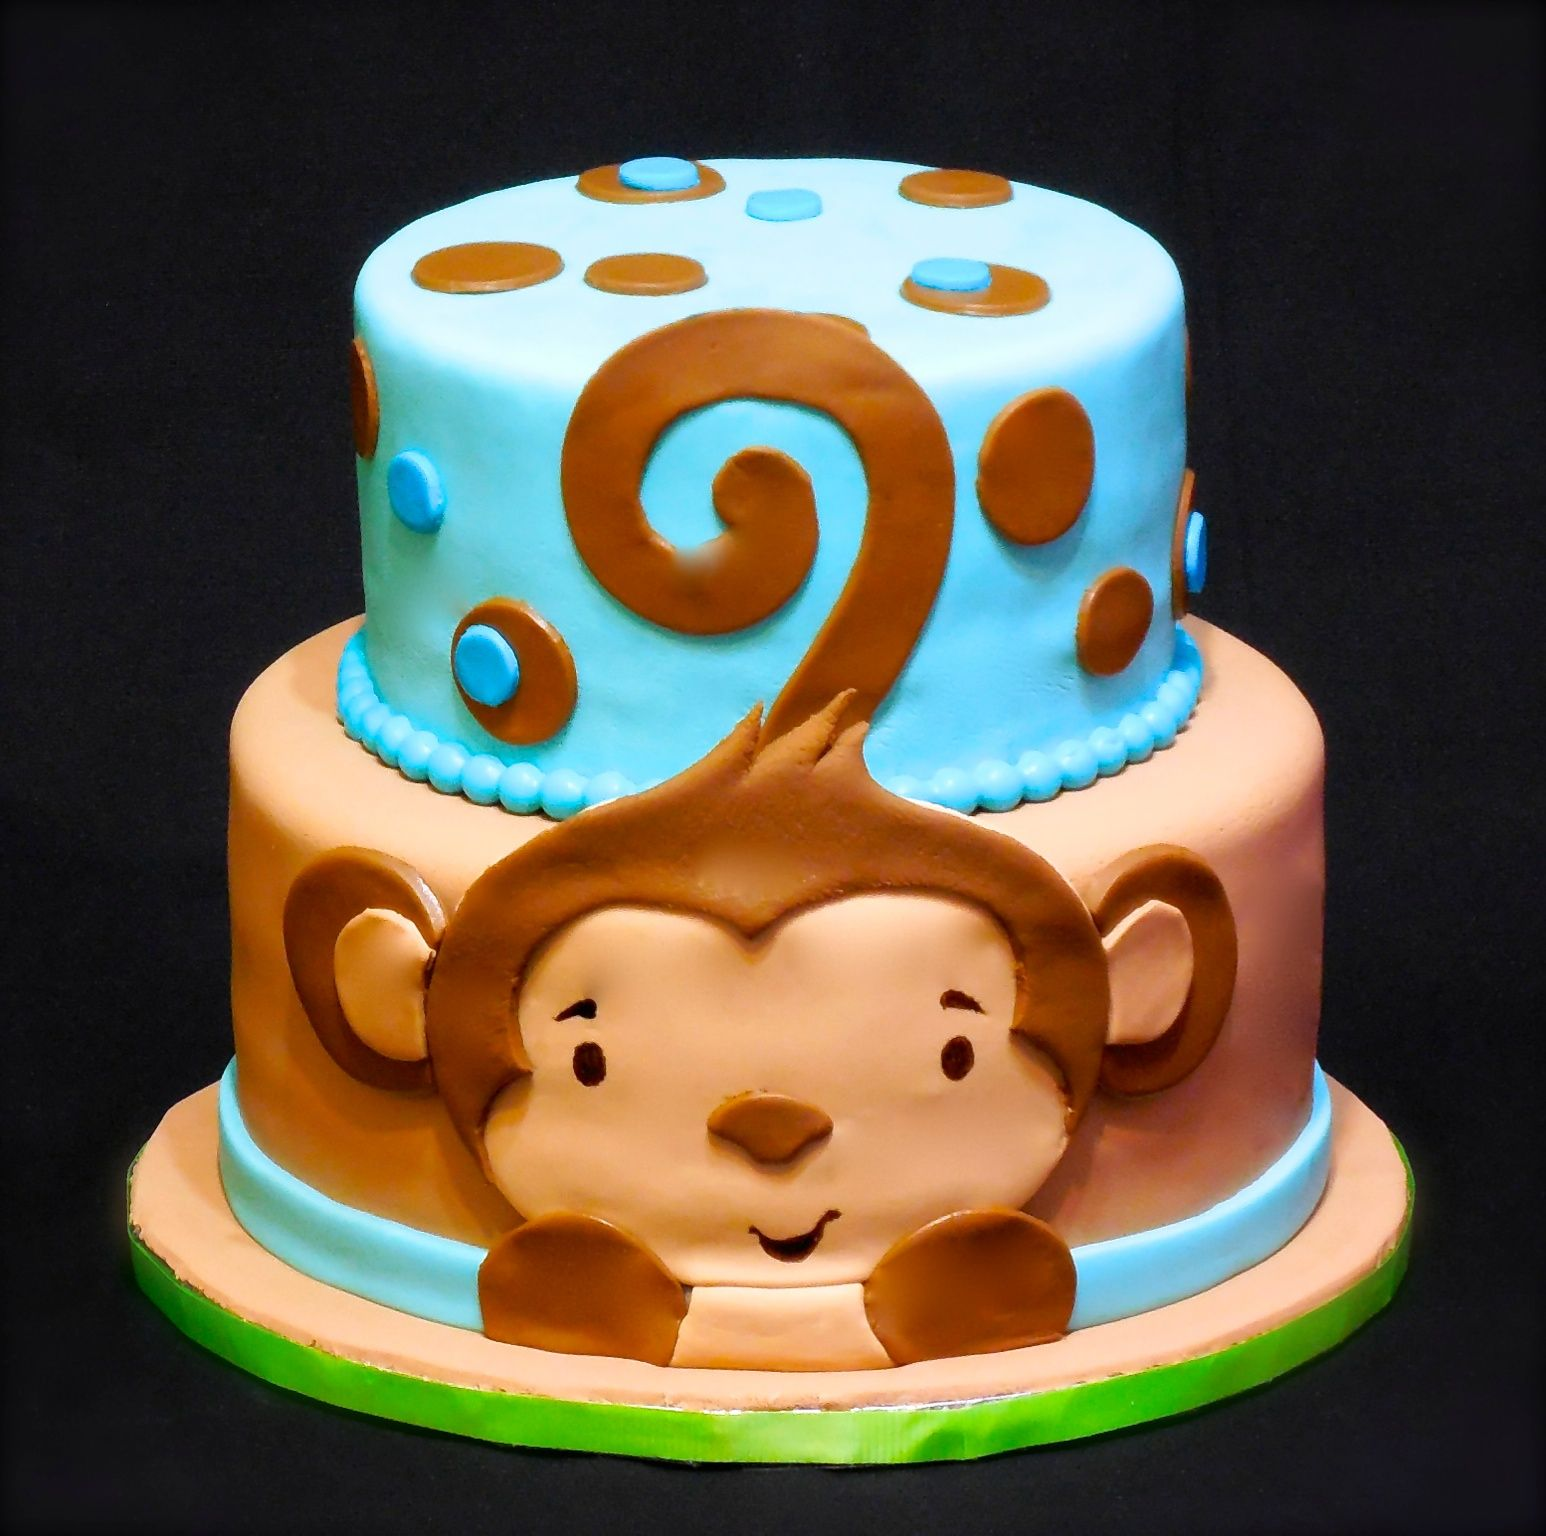 Boys Baby Shower Cake: Monkey Boy Baby Shower Cake